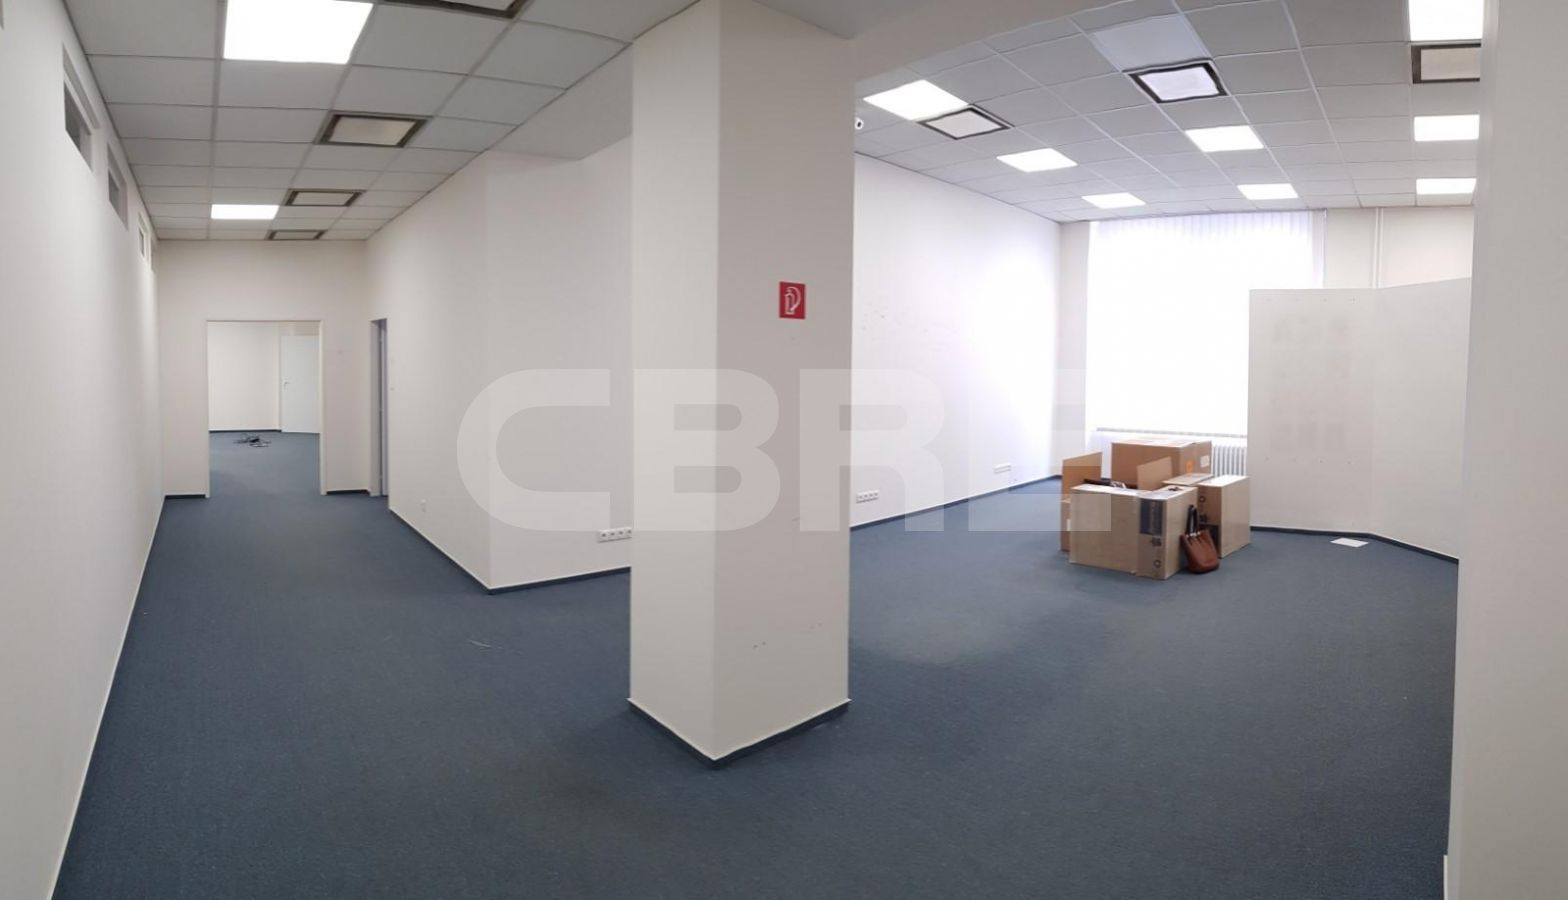 Hurbanova 4, Žilina | Offices for rent by CBRE | 2